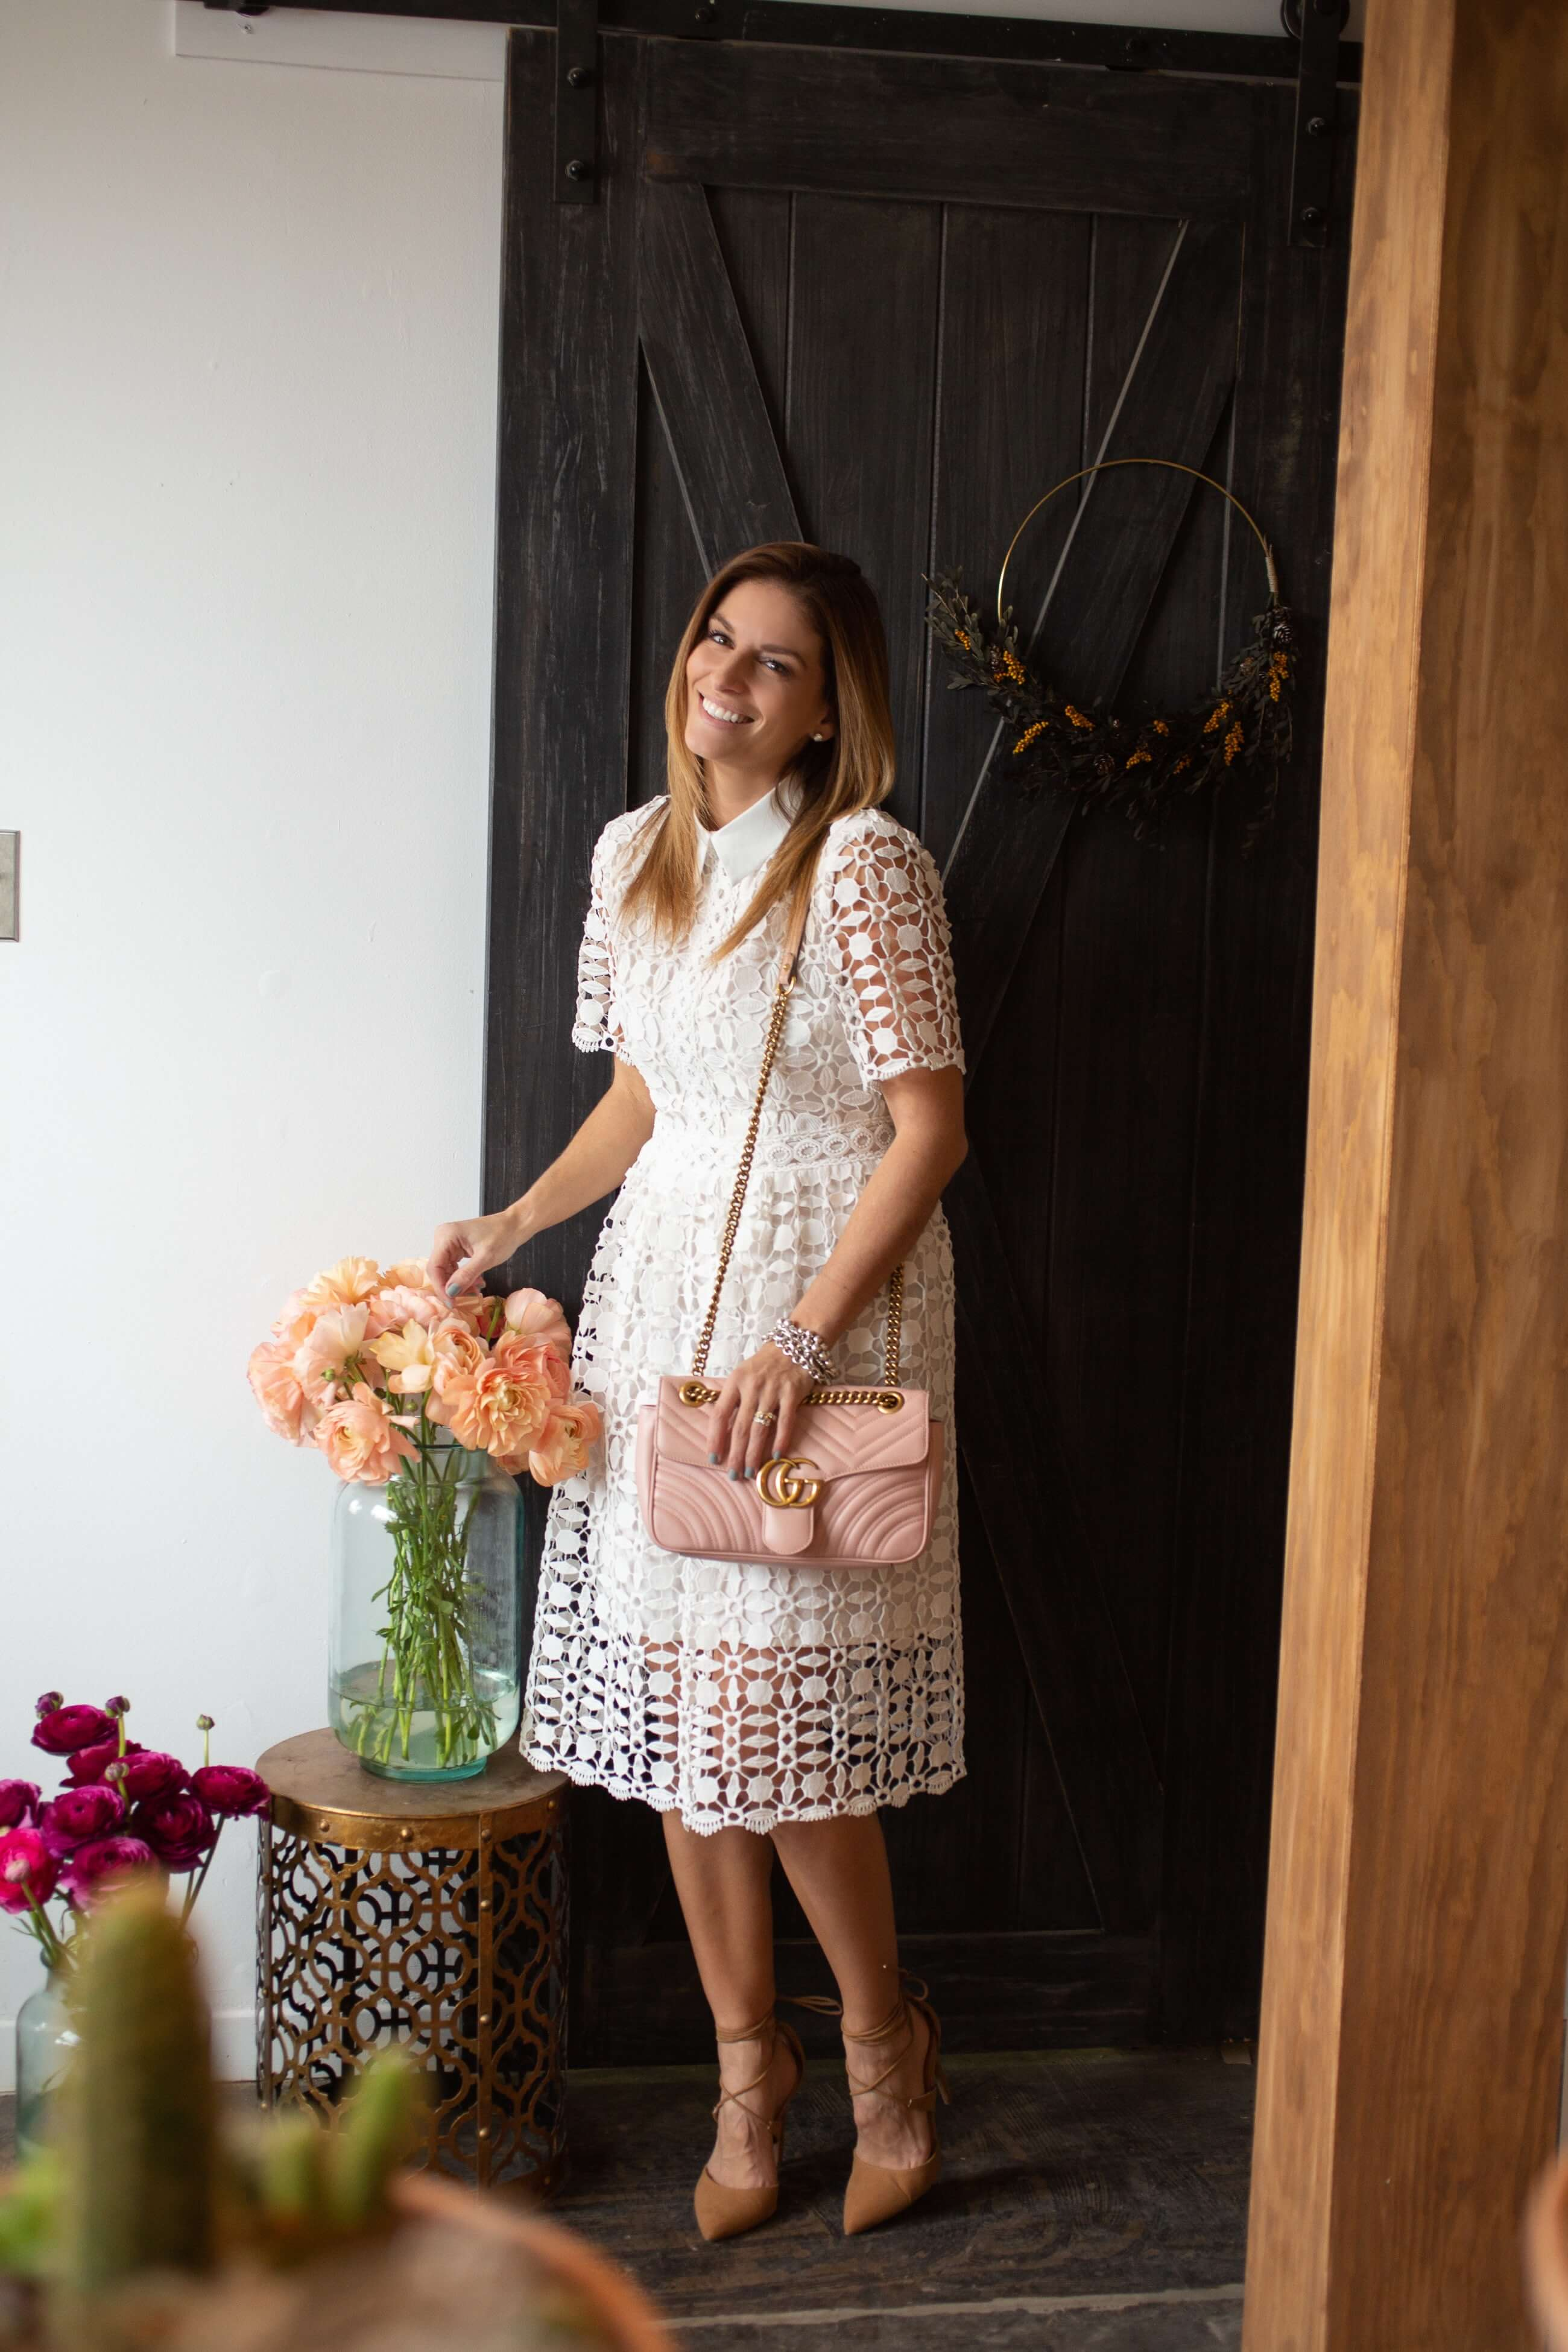 Pretty spring dress; Chicwish splendid crochet white dress, lace up nude heels, pink Gucci Marmont bag; Mandy Furnis sparkleshinylove; whitby blogger